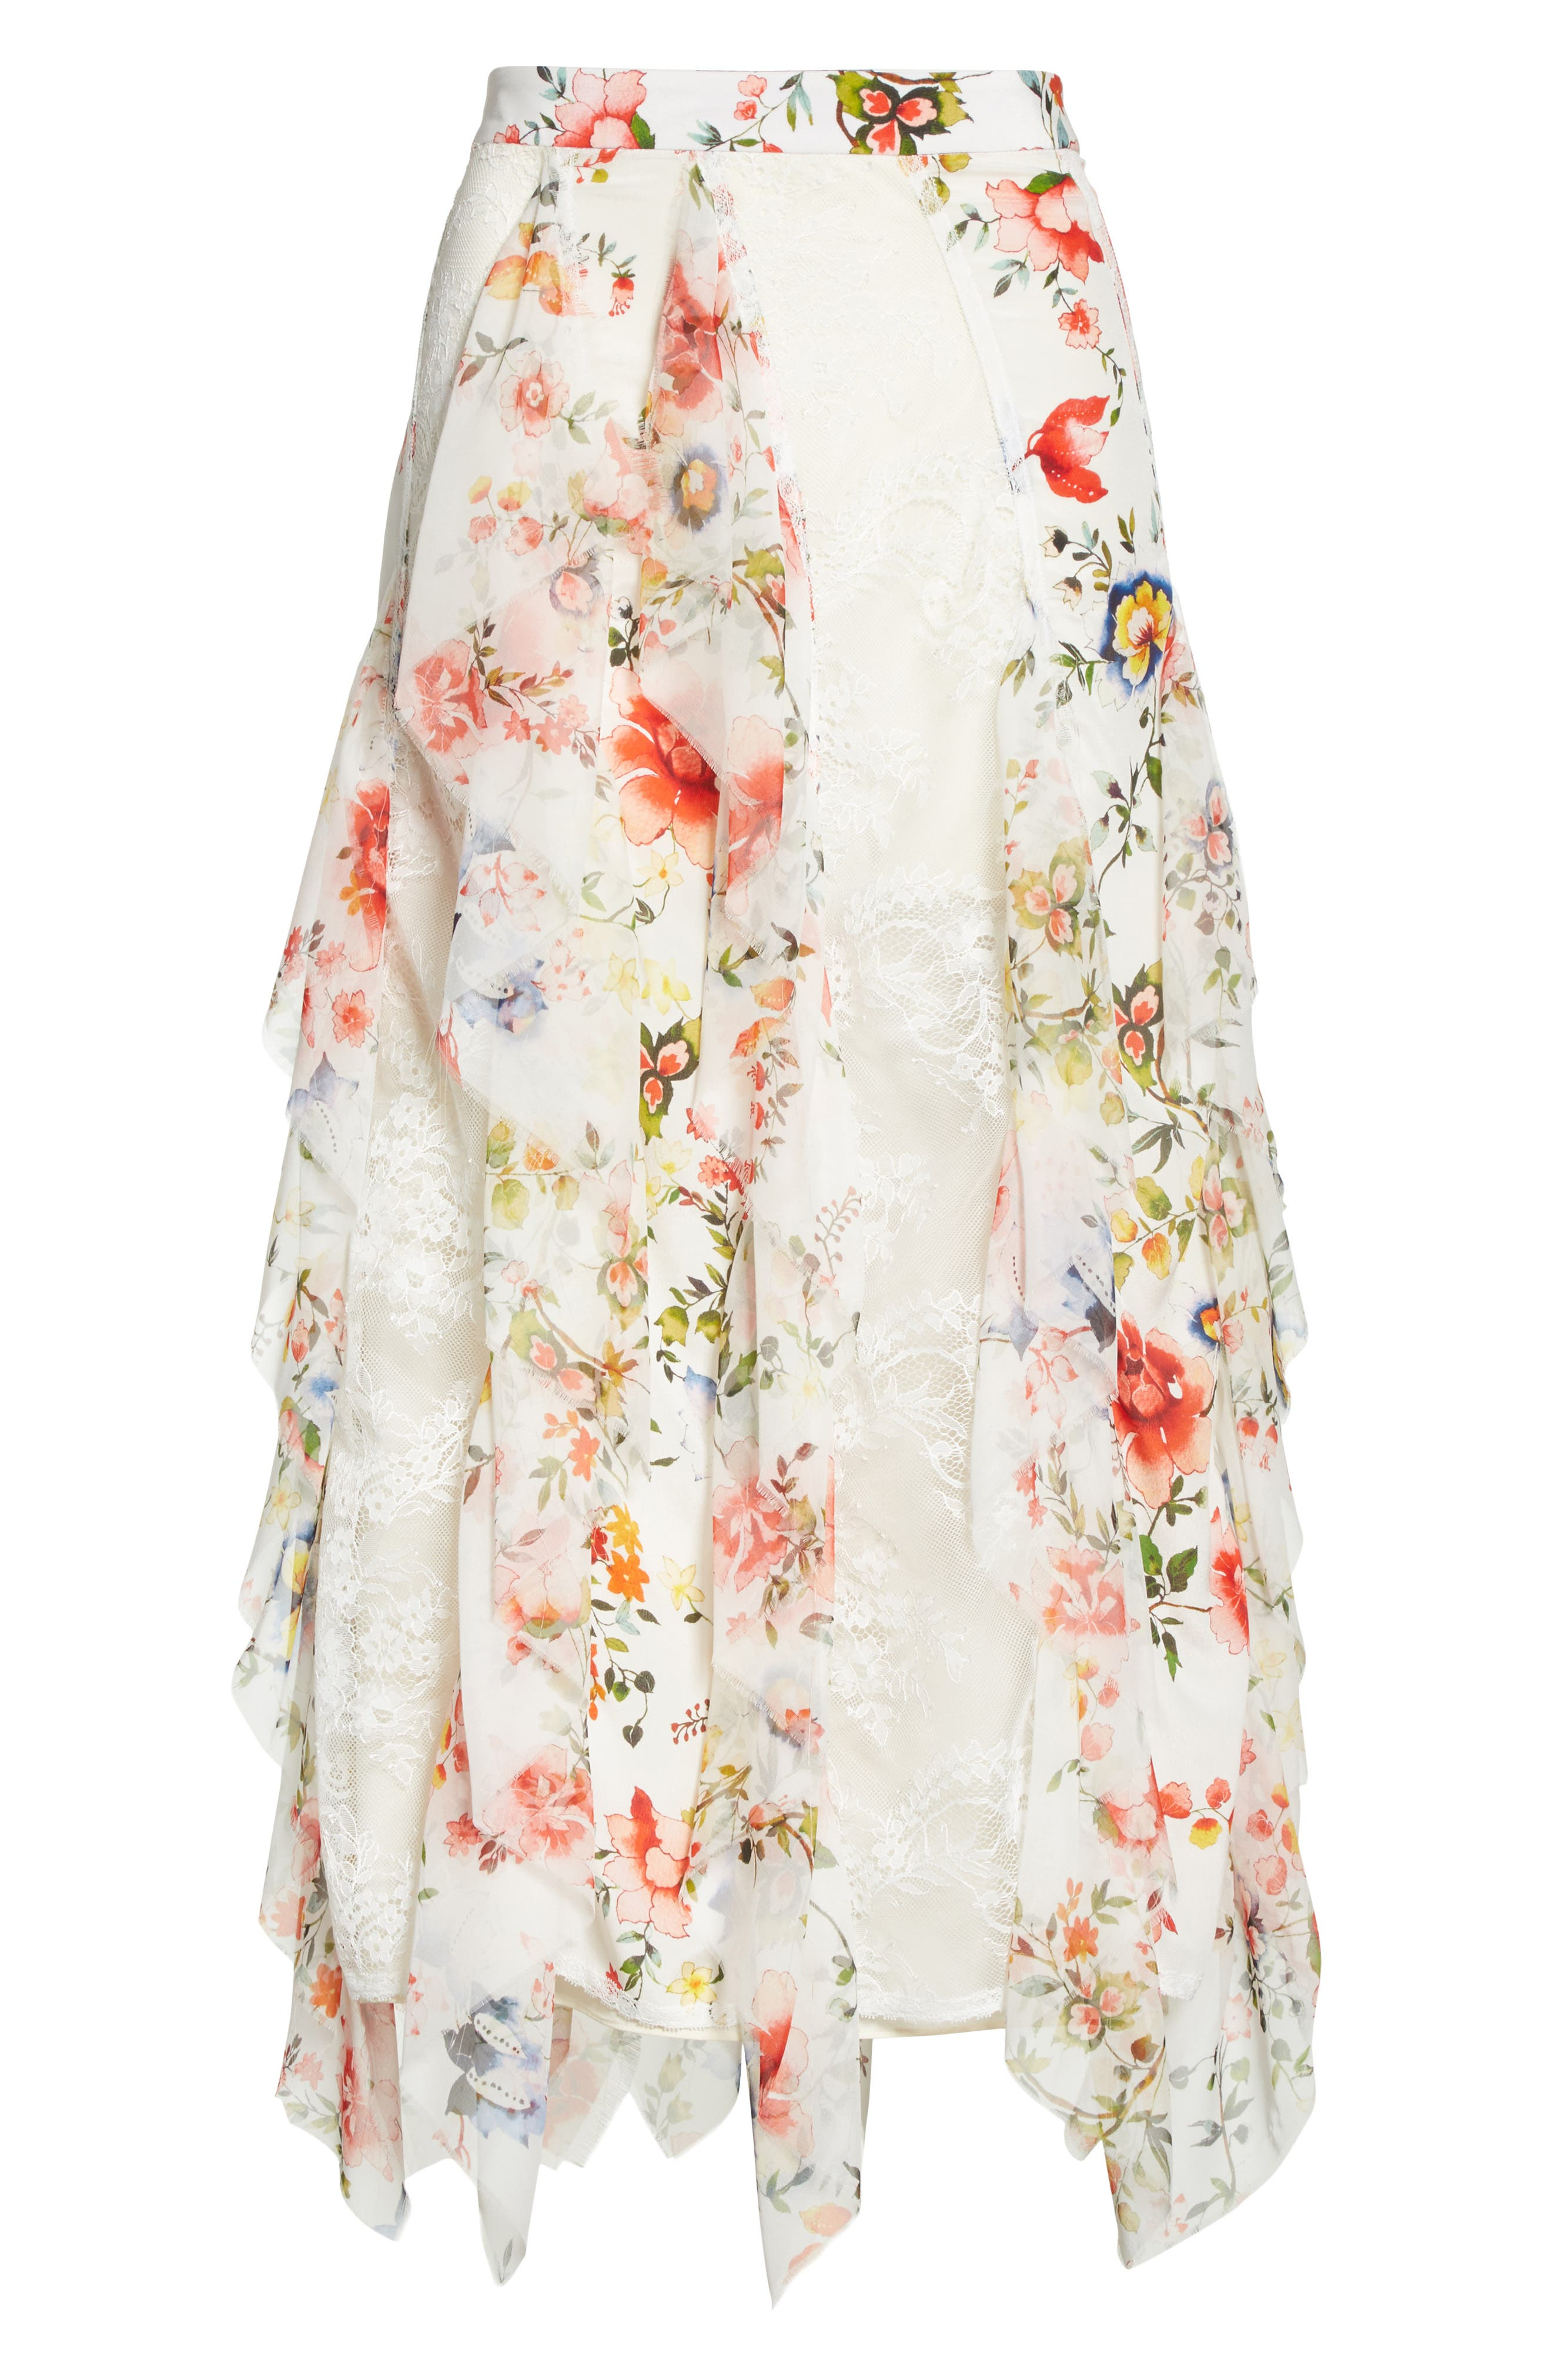 Yula Floral Silk & Lace Midi Skirt,                             Alternate thumbnail 6, color,                             Floral Soiree-Soft White